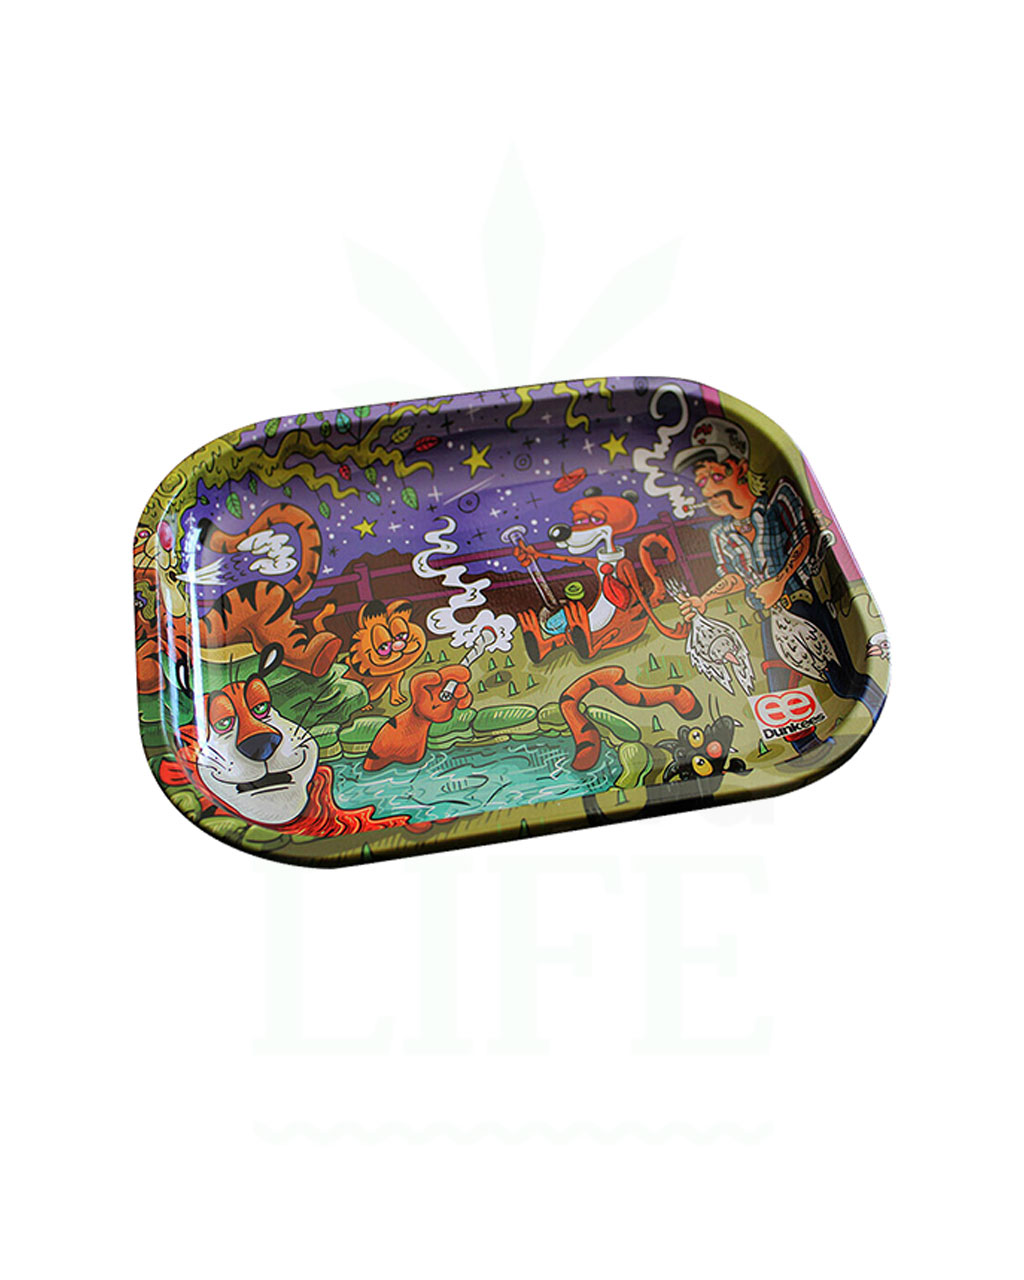 aus Metall DUNKEES Rolling Tray | 'King of Tigers'